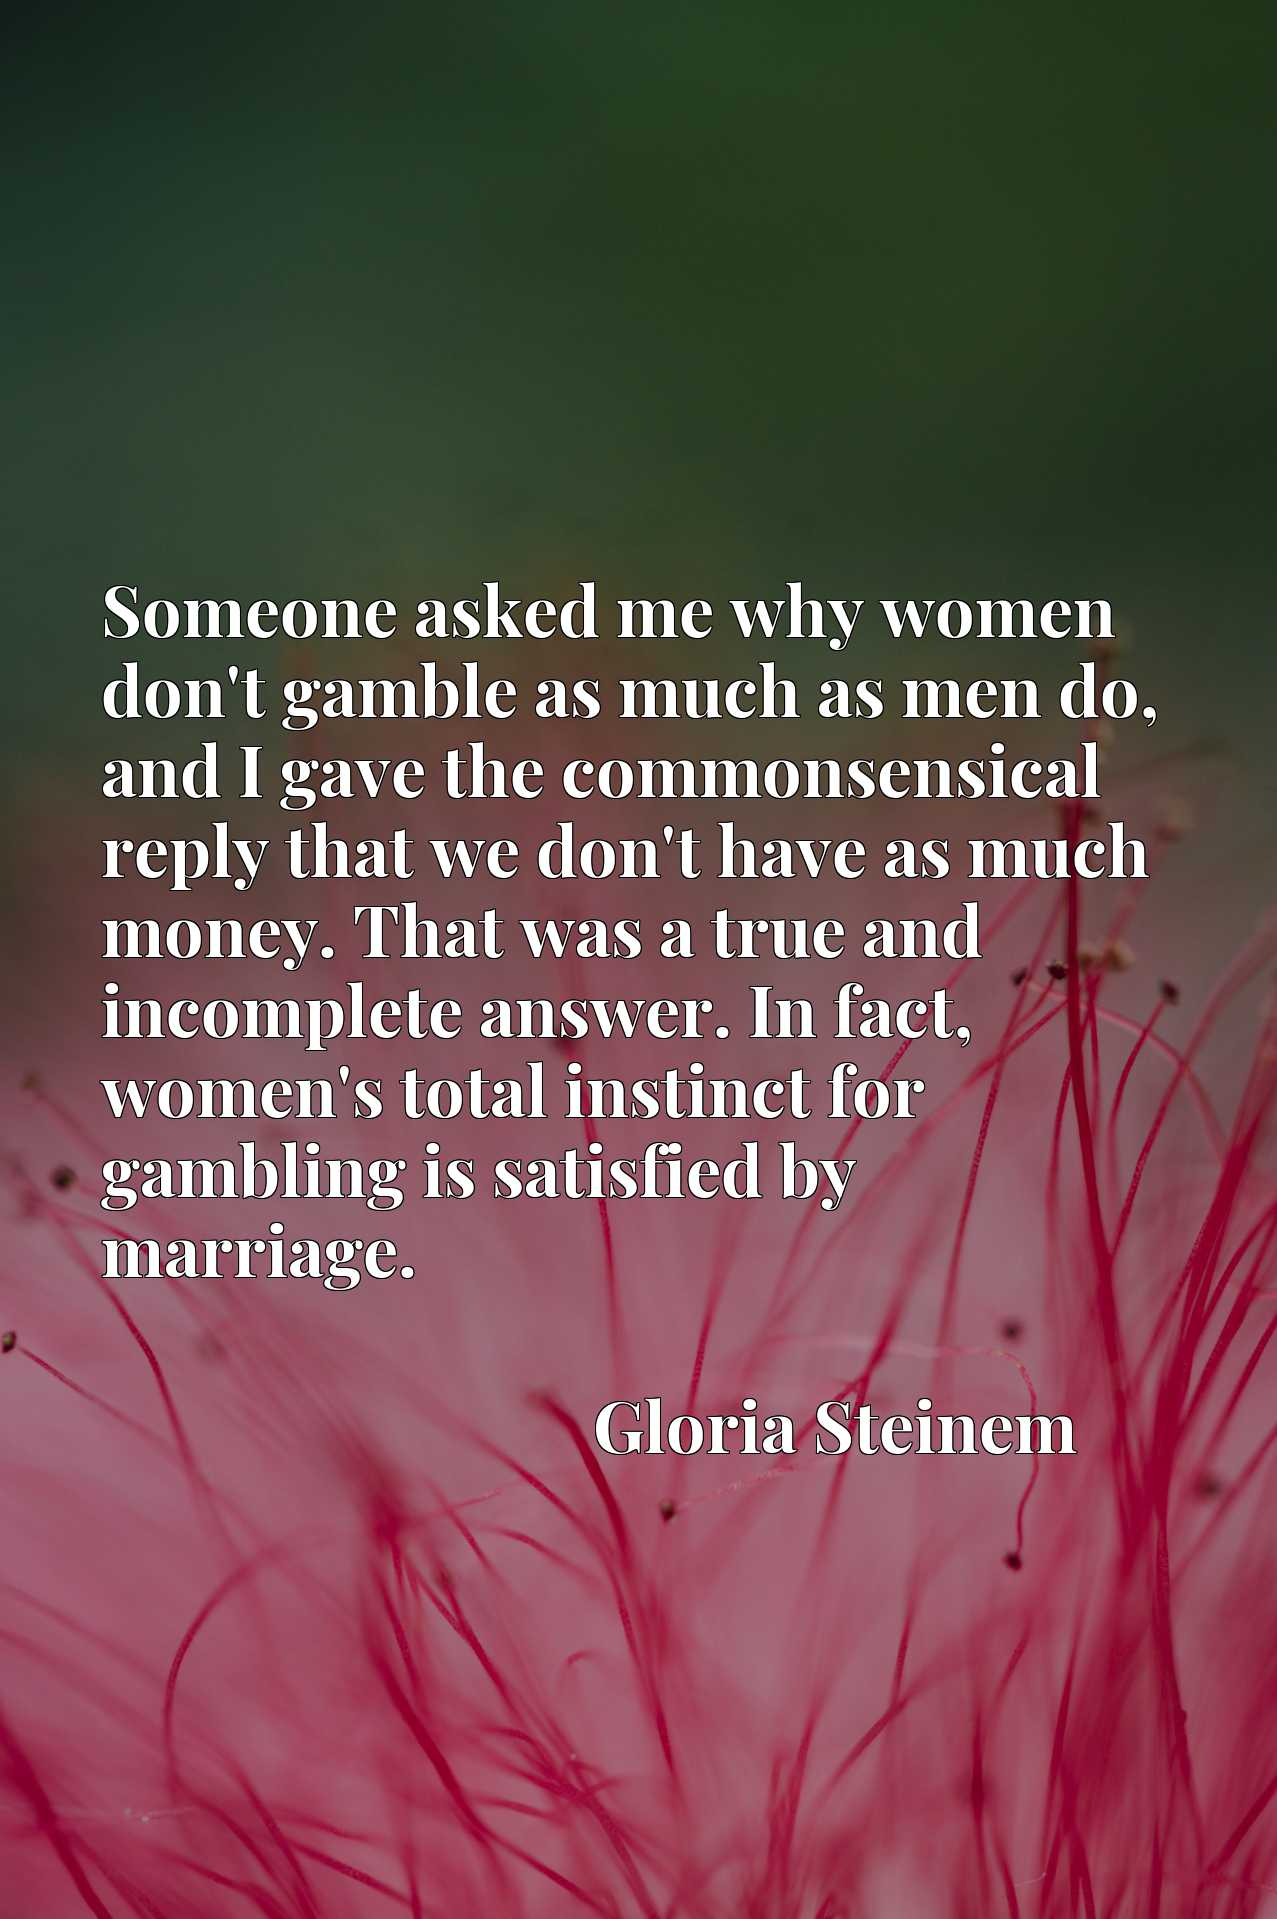 Someone asked me why women don't gamble as much as men do, and I gave the commonsensical reply that we don't have as much money. That was a true and incomplete answer. In fact, women's total instinct for gambling is satisfied by marriage.